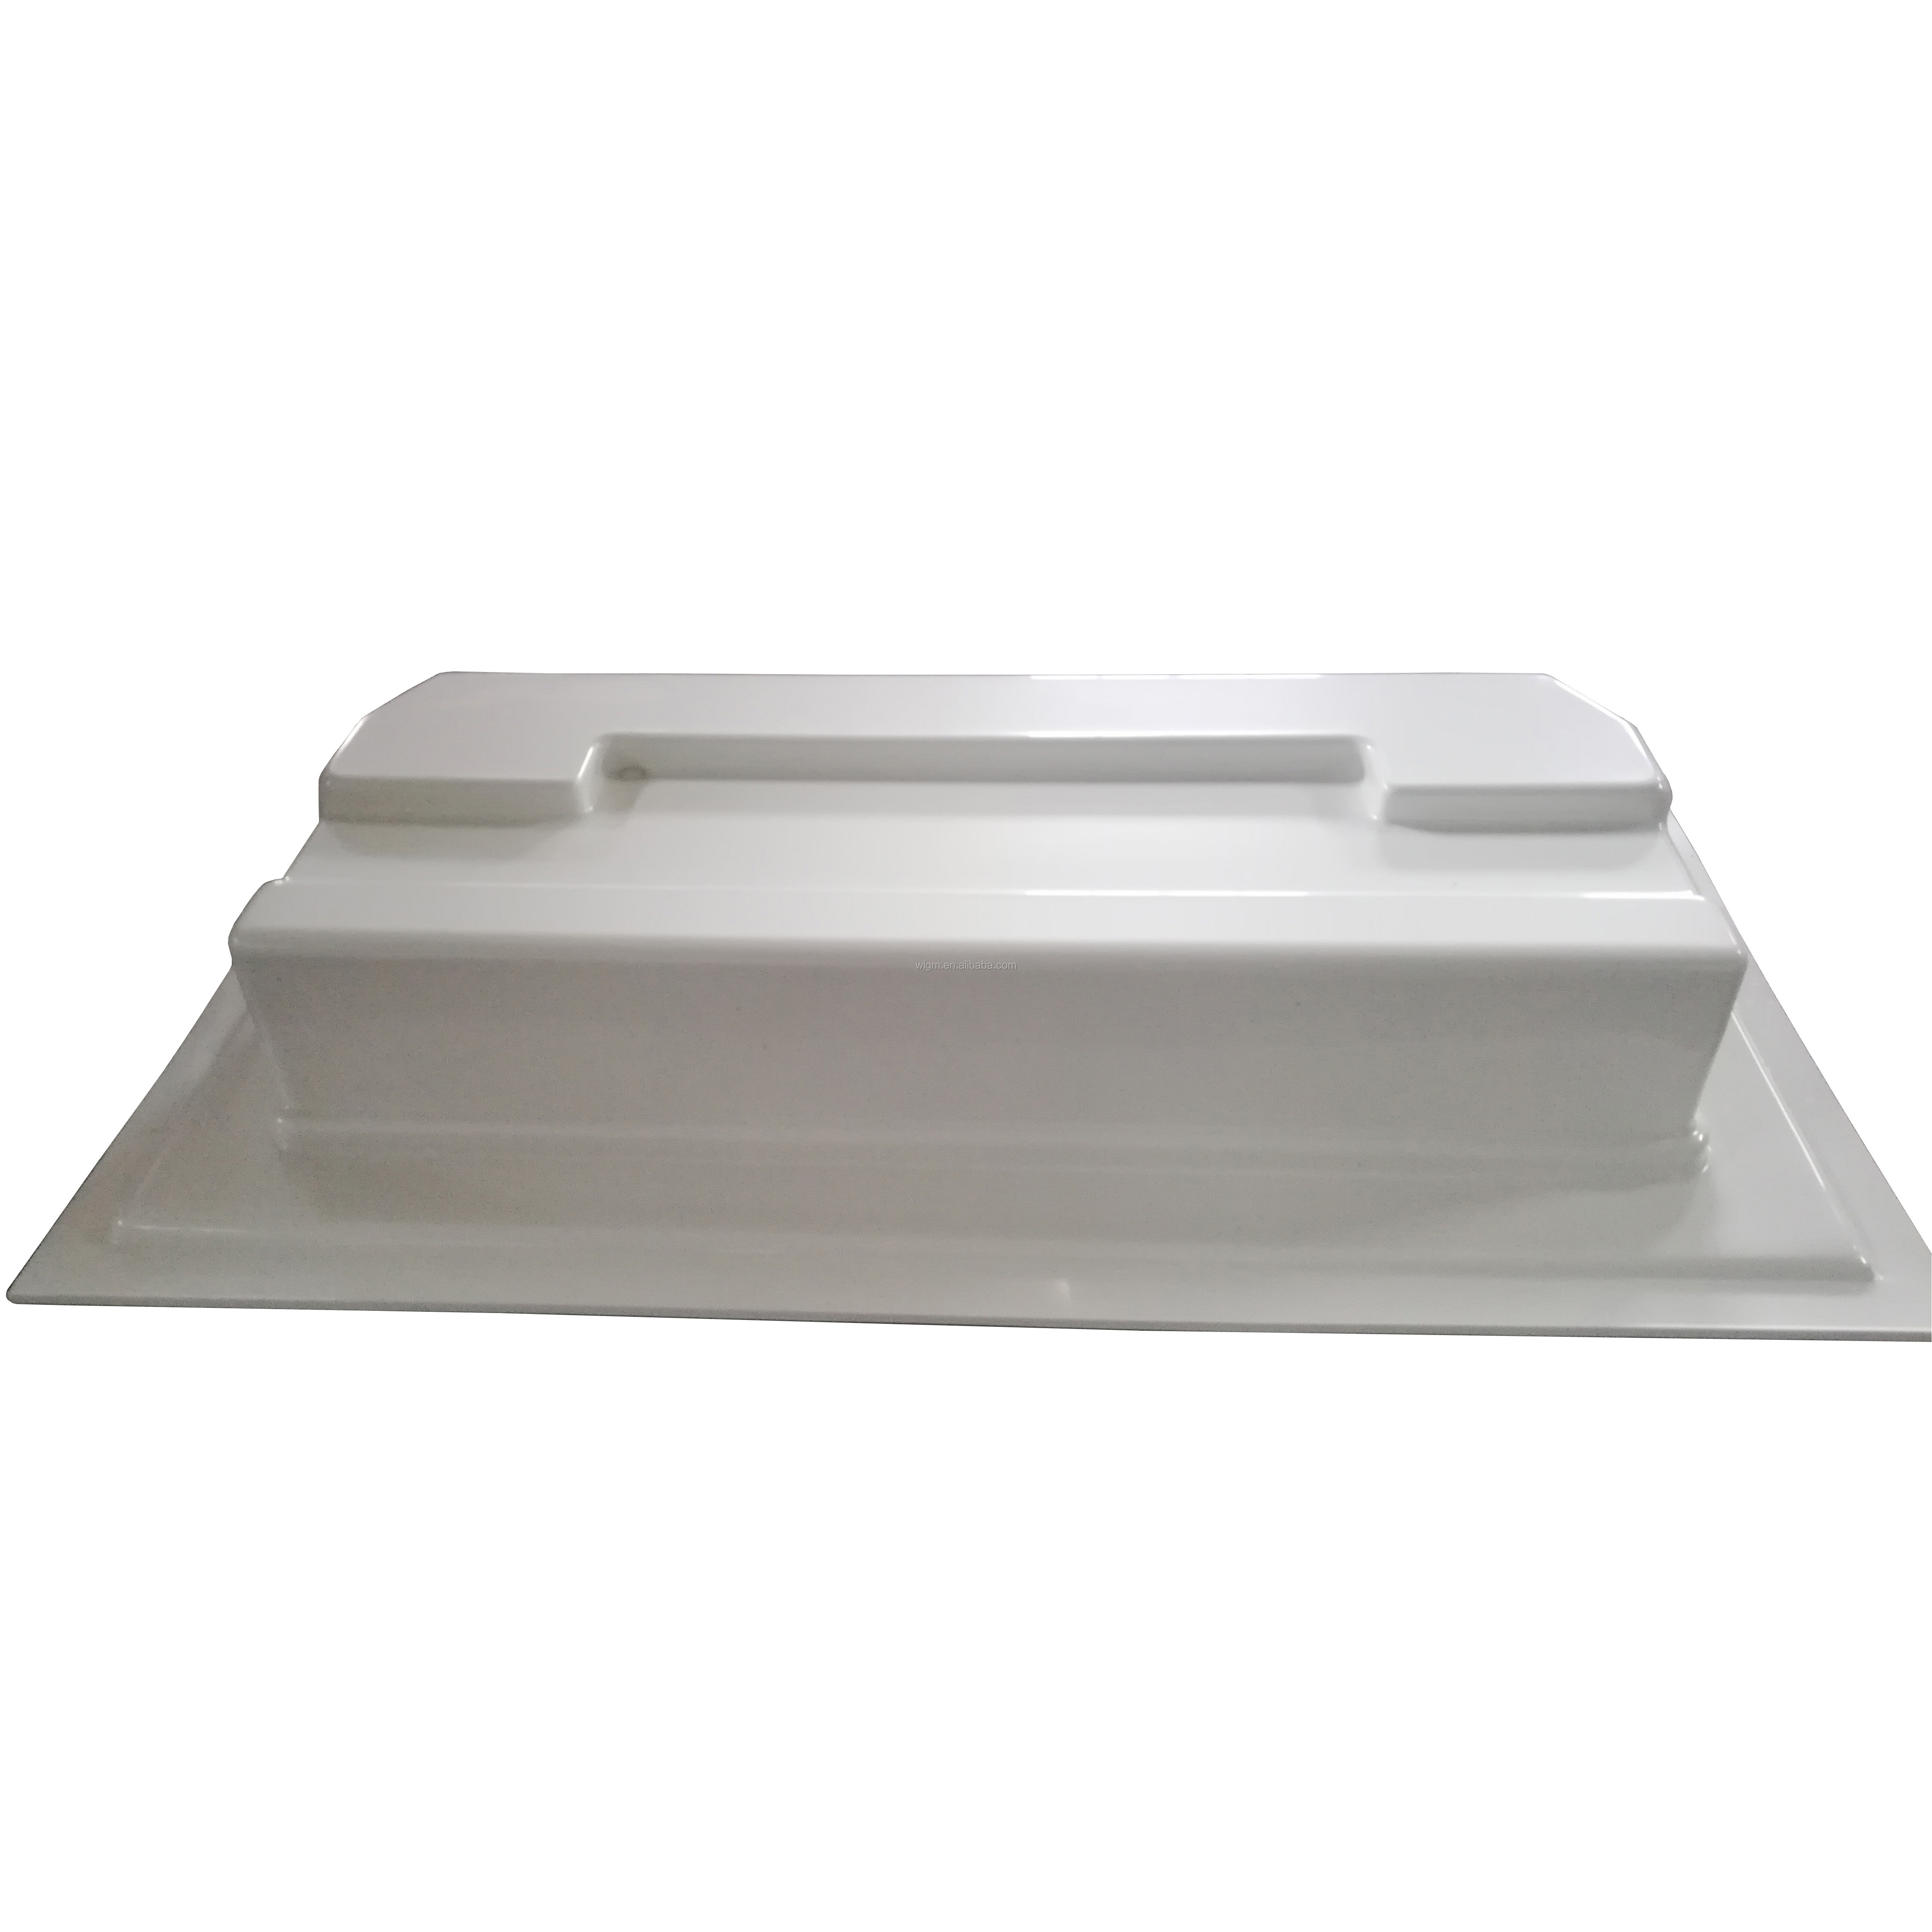 vacuum forming process equipment yuyao custom plastic parts products made by vacuum forming